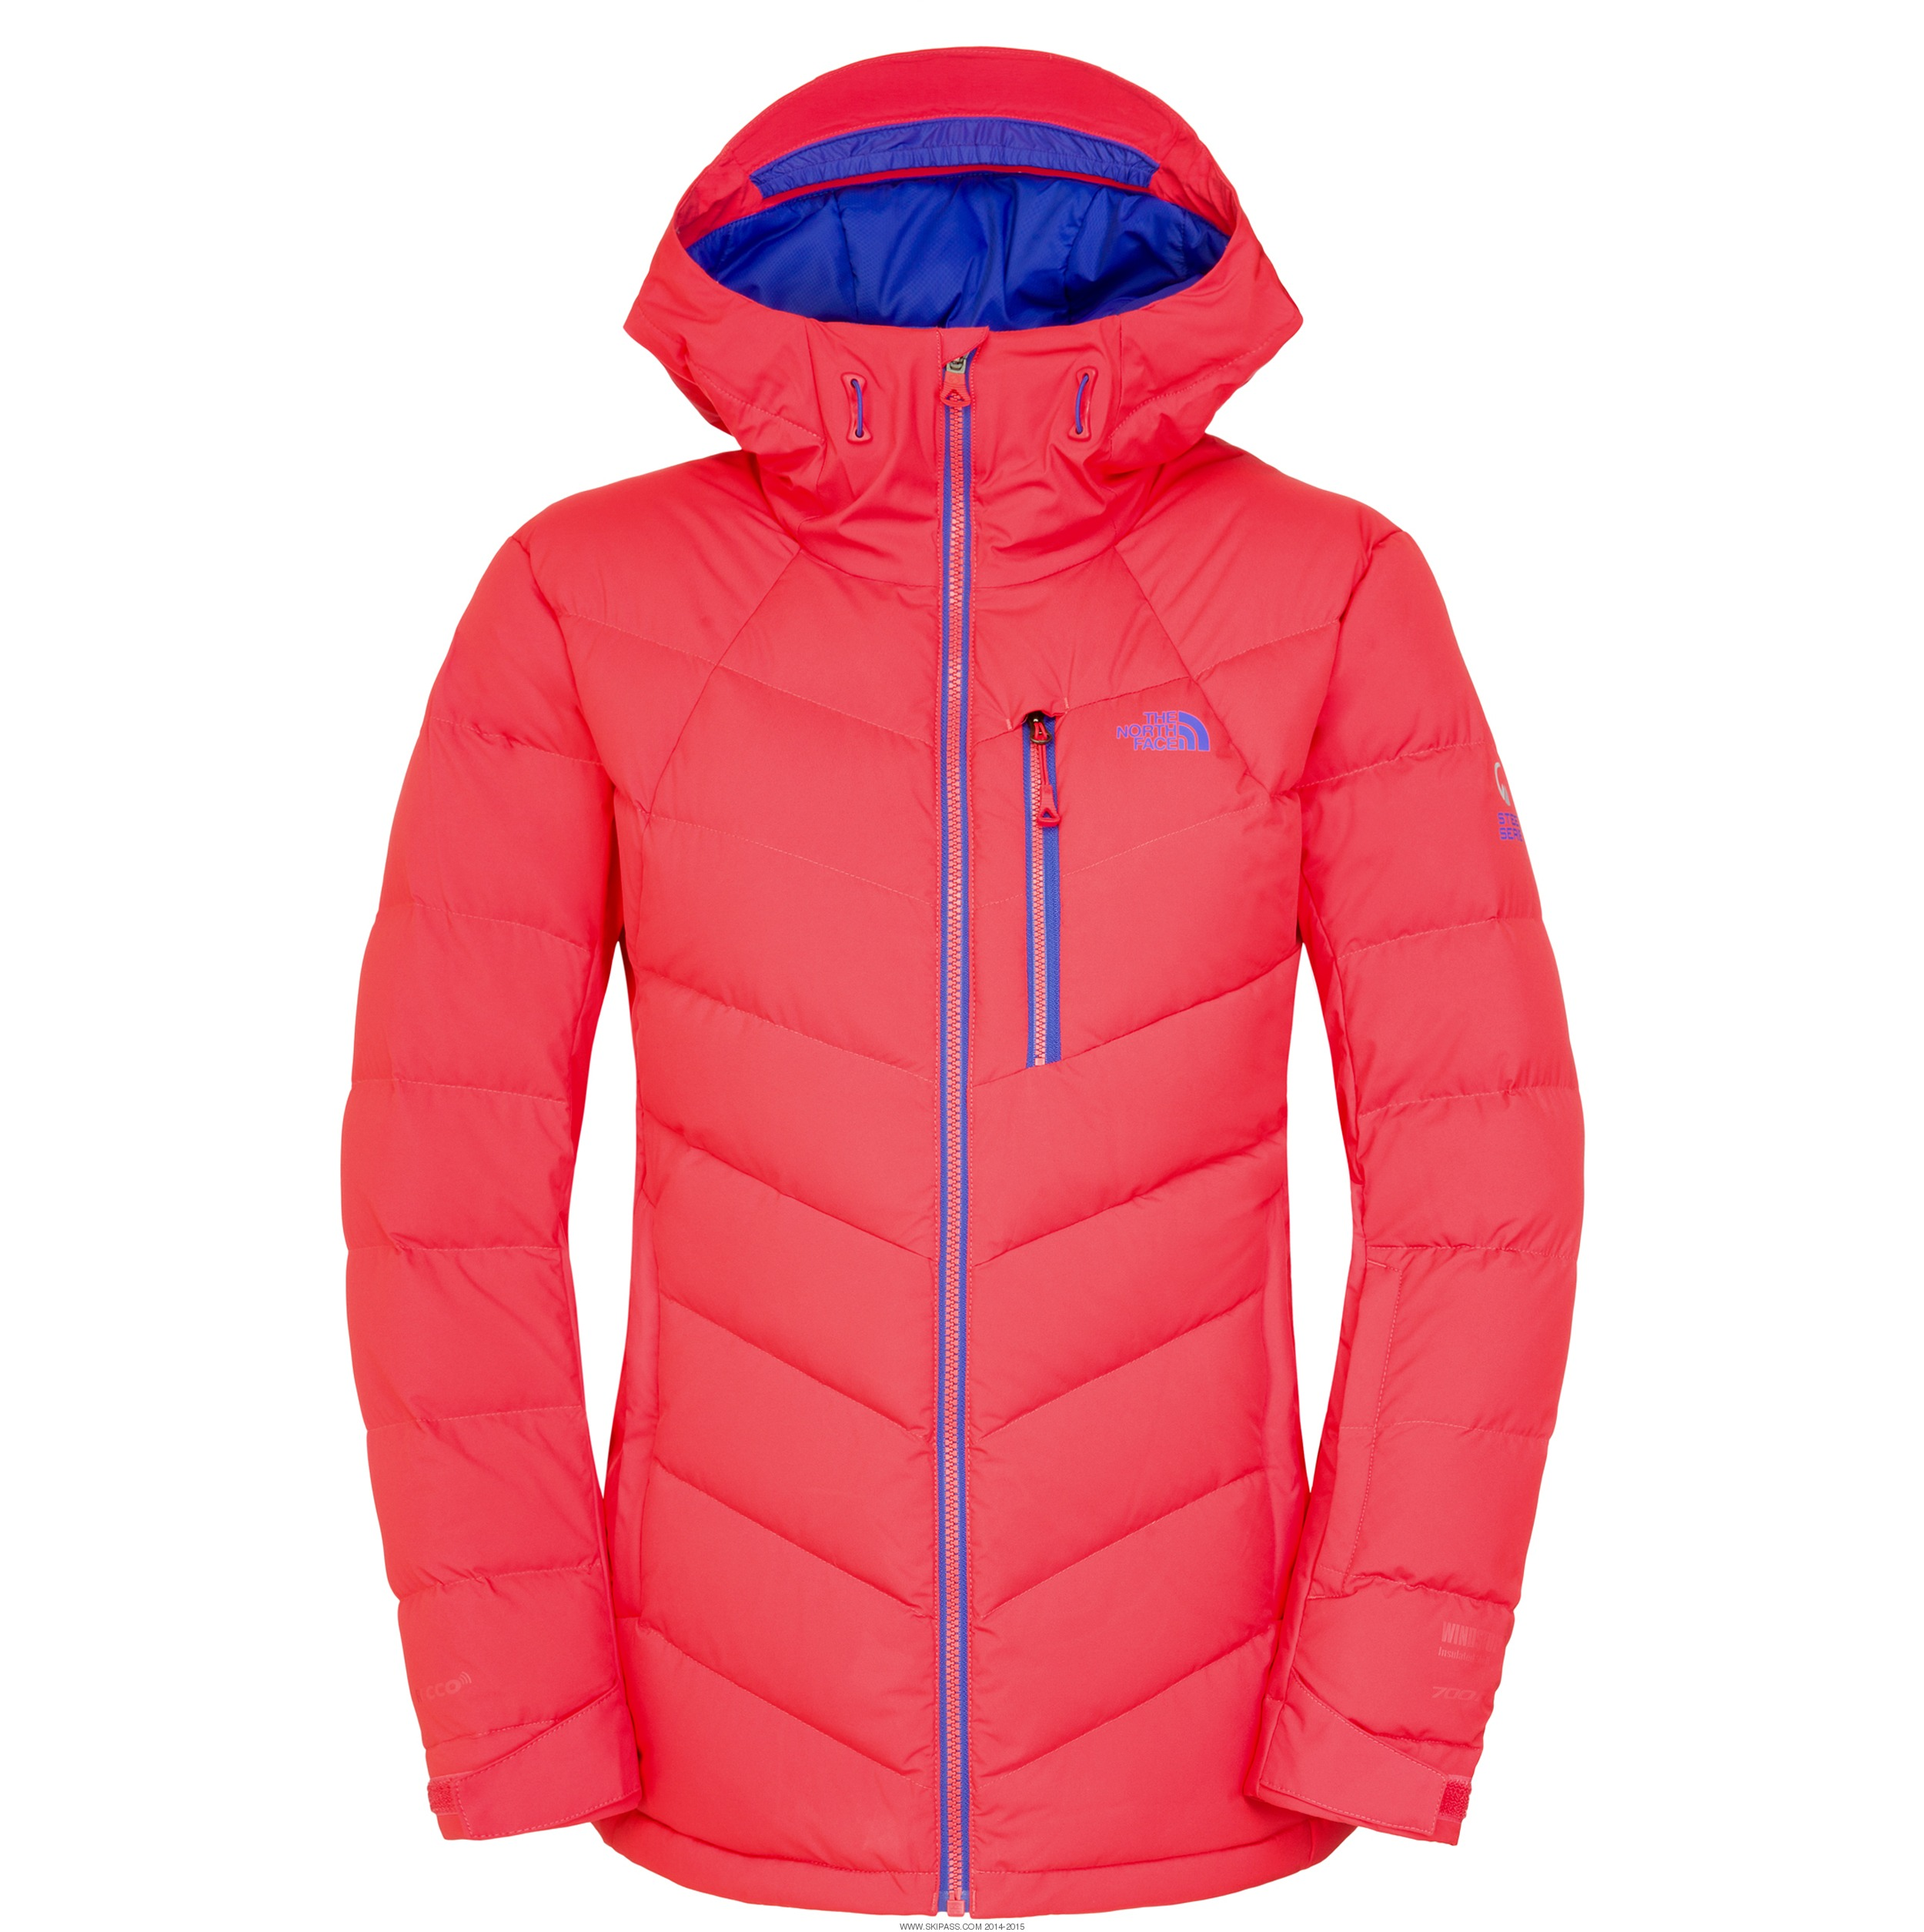 efbd1040a netherlands the north face mens point it down hybrid jacket test ...